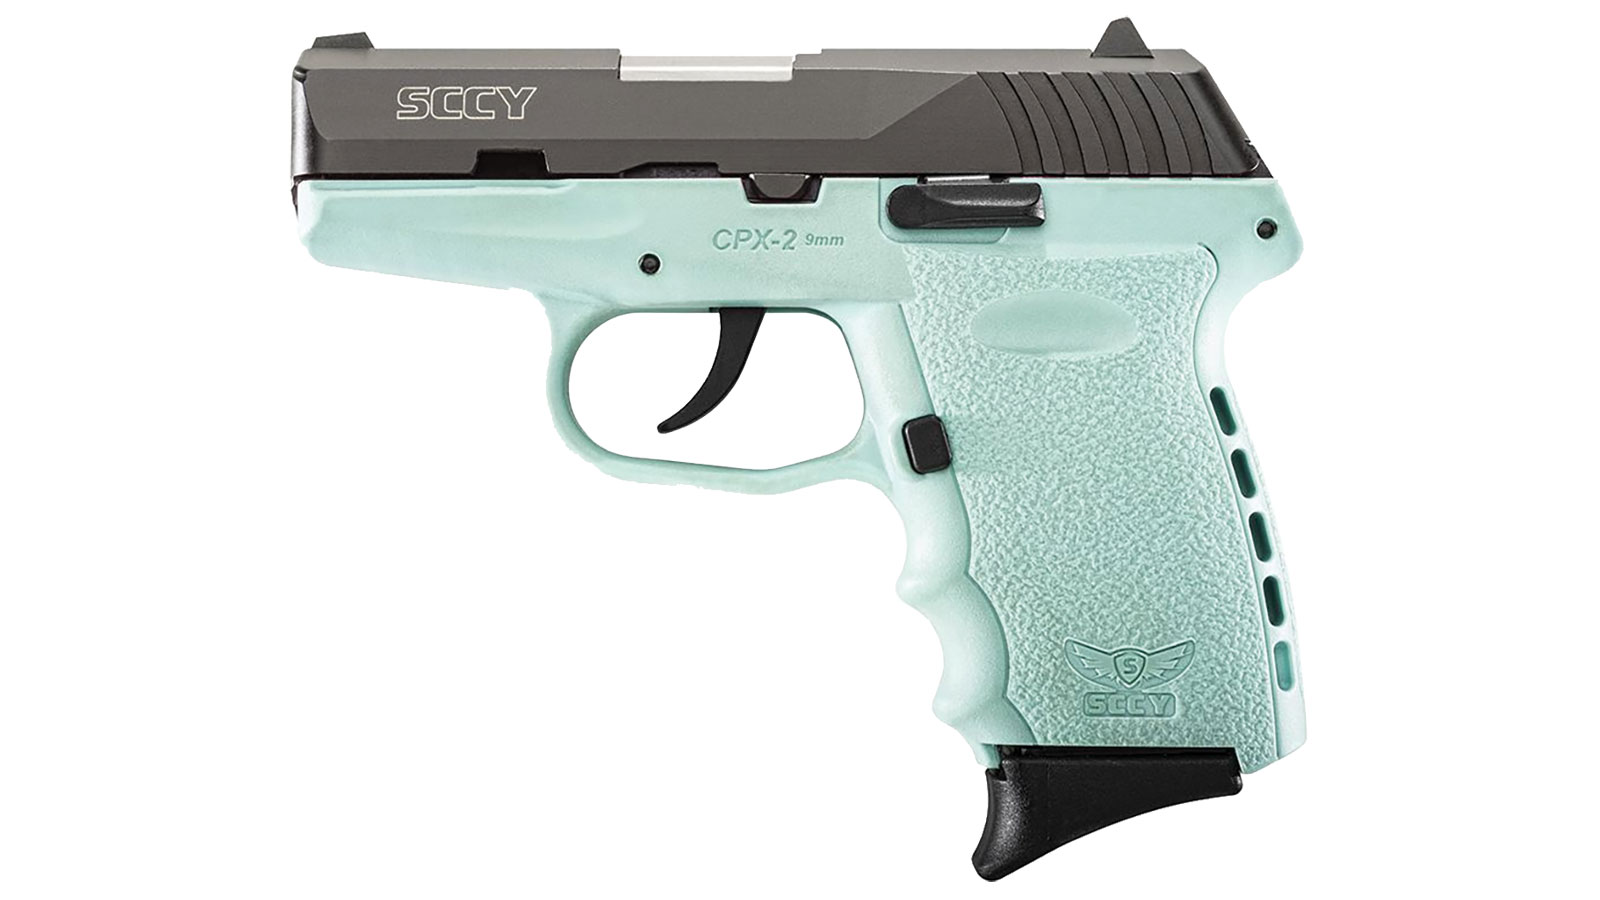 SCCY Industries CPX2CBSB CPX-2 Double 9mm 3.1 10+1 Robin Egg Blue Polymer Grip|Frame Grip Black Nitride Stainless Steel in.